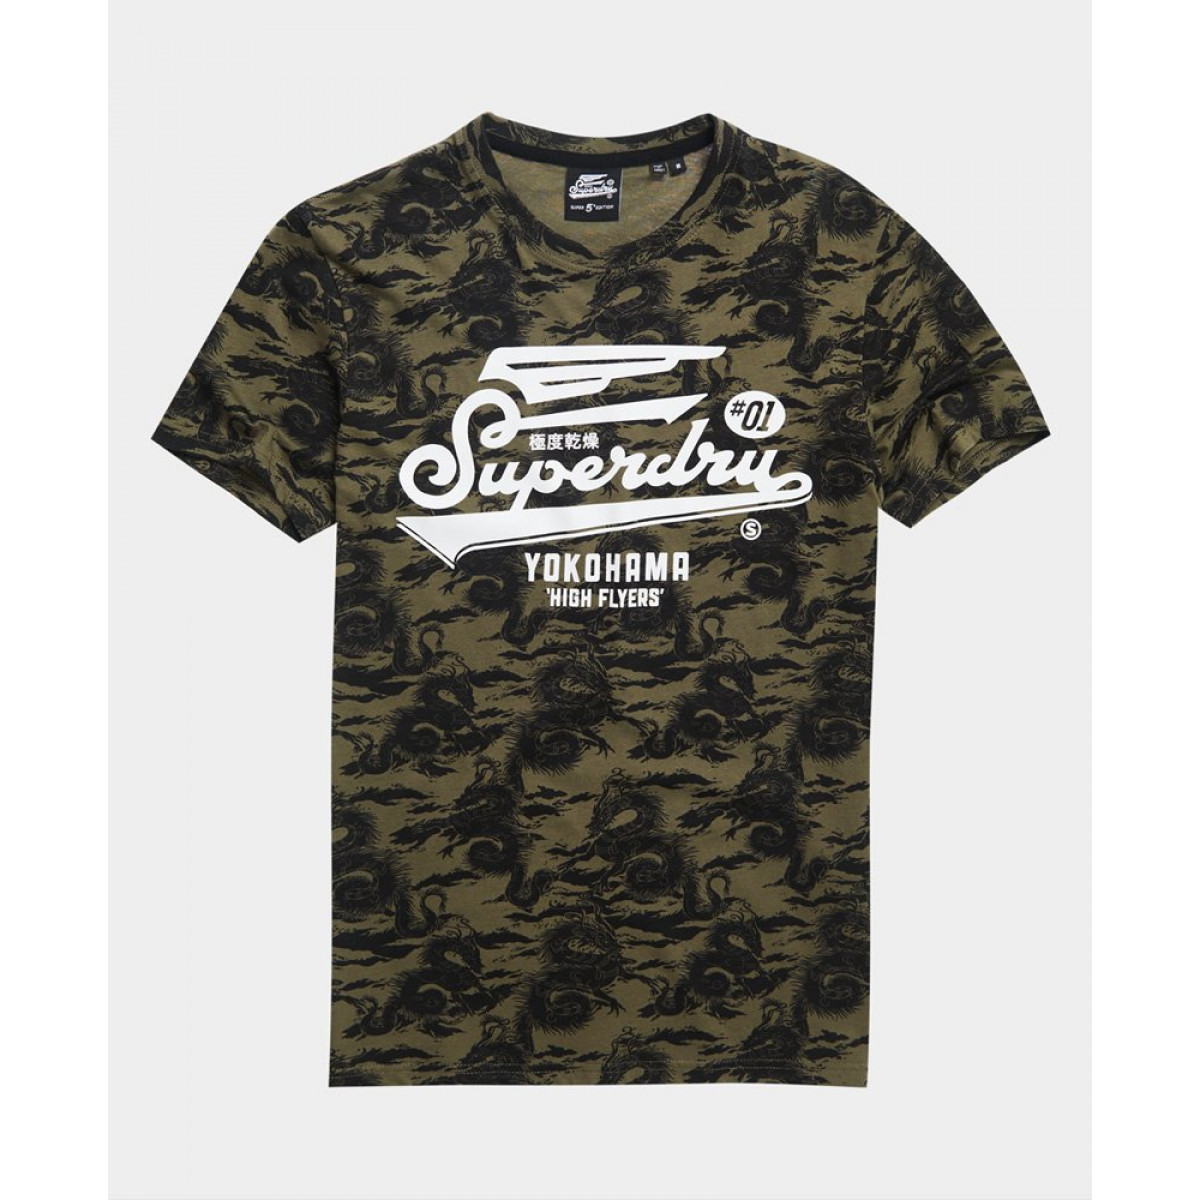 Super 5's Tee Shirt by SuperDry